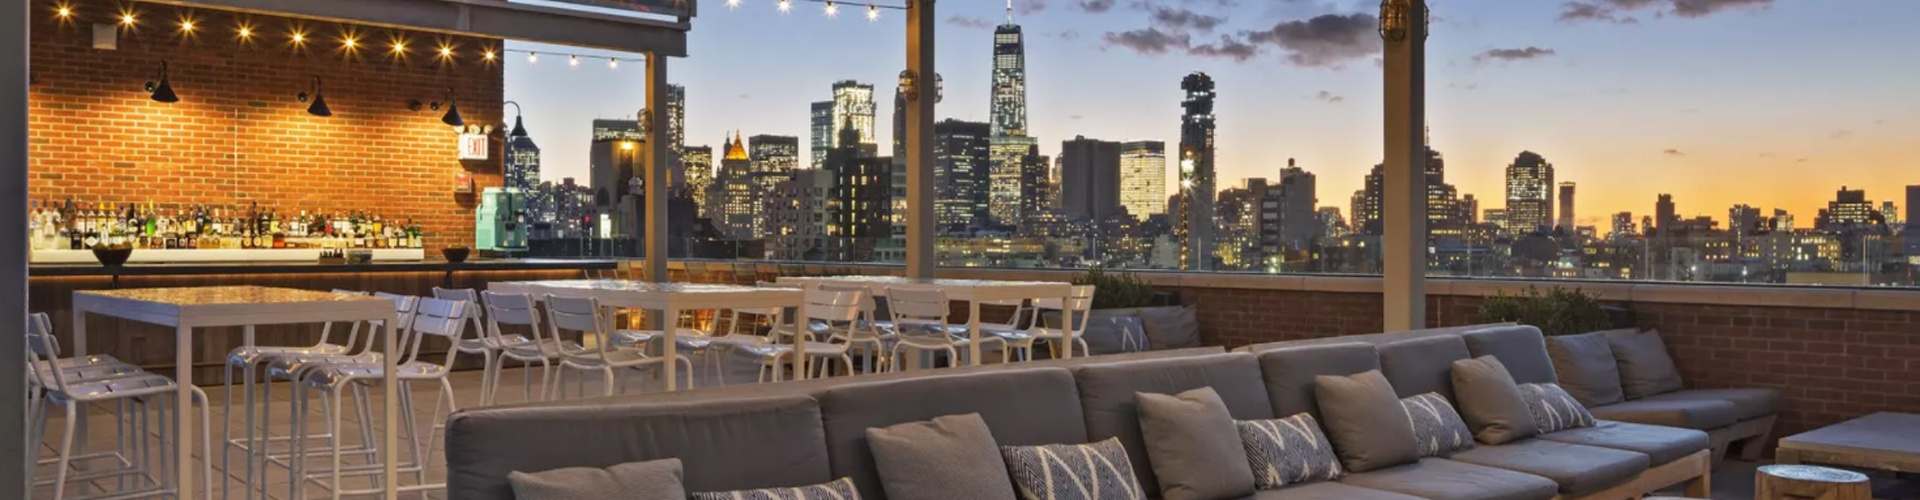 Top 5: NYC Hotel Bars & Signature Drinks